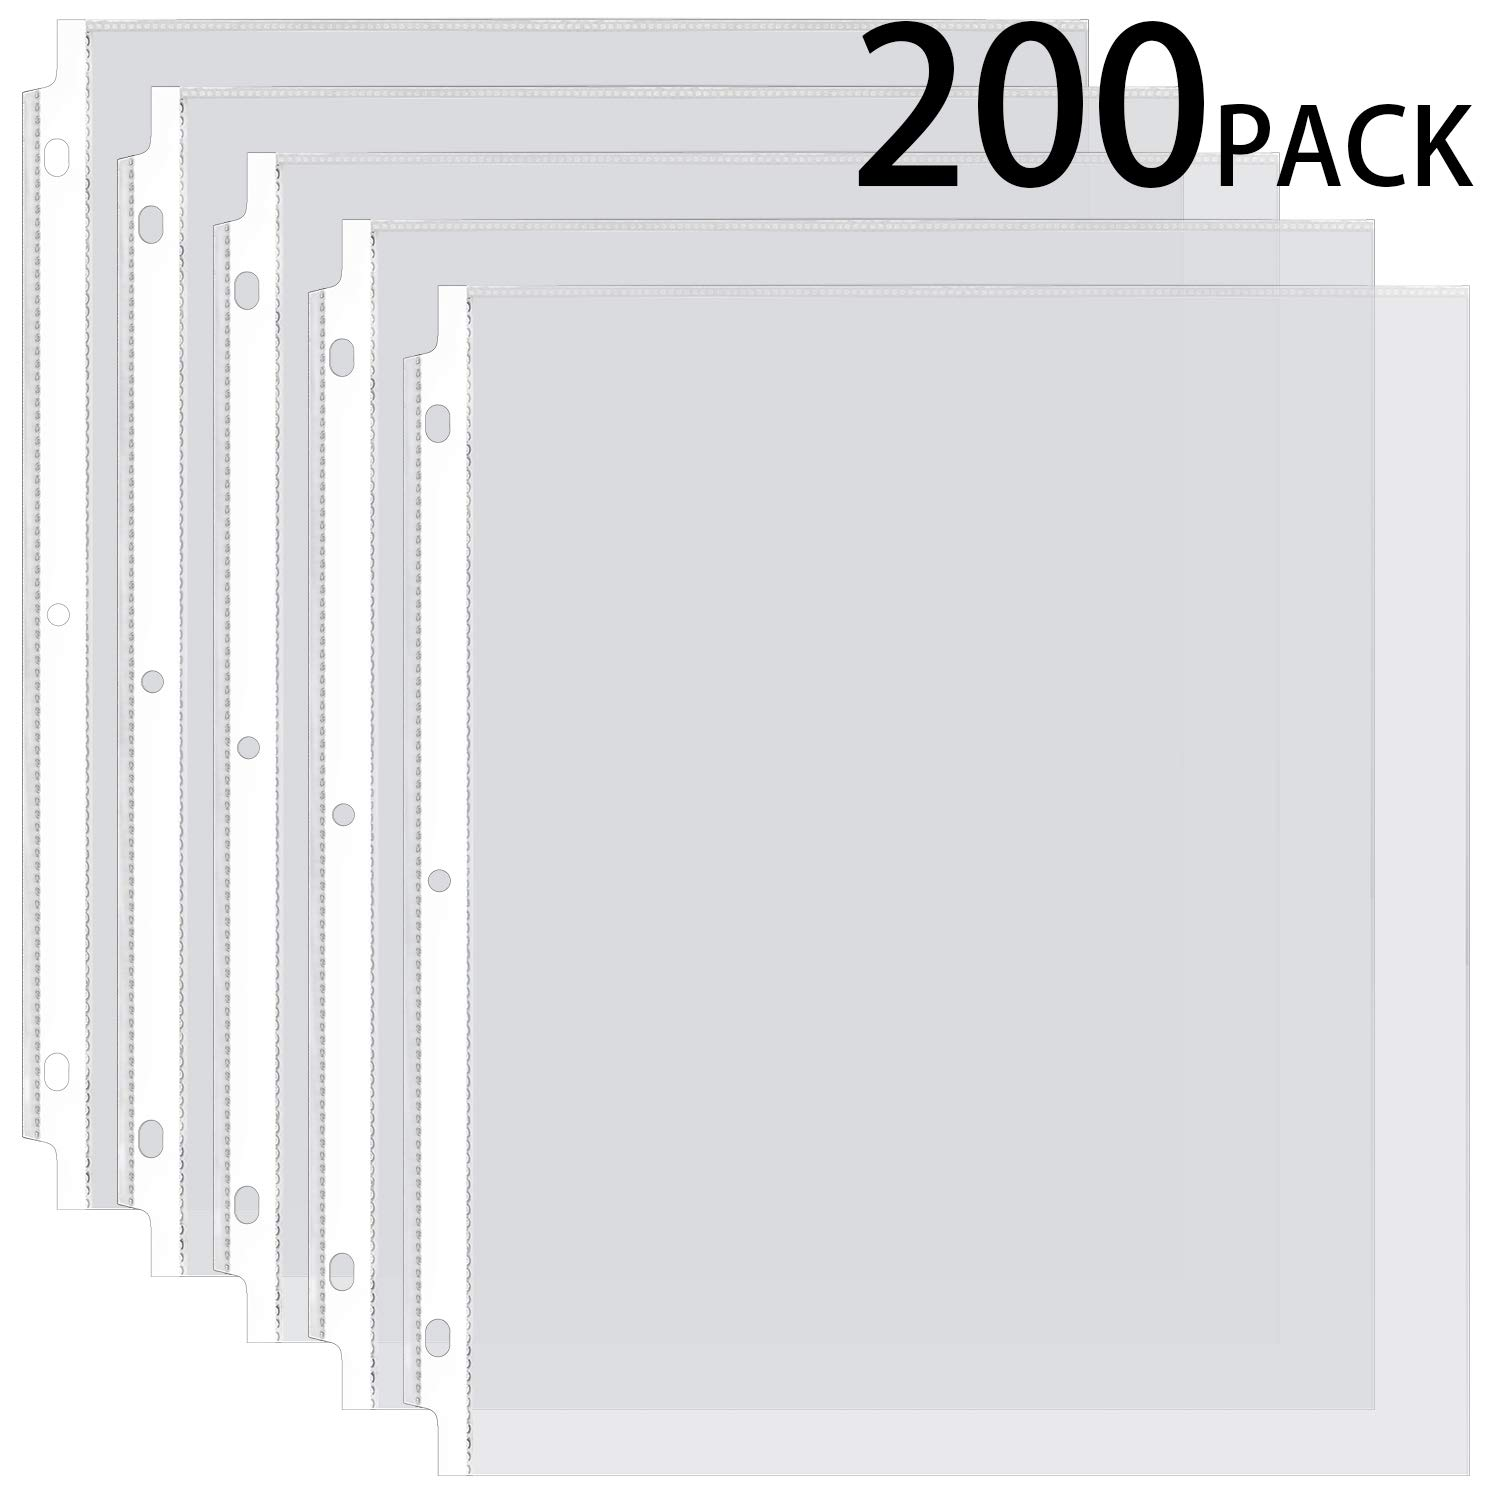 Ktrio Sheet Protectors 8.5 x 11 Inches Clear Page Protectors for 3 Ring Binder, Plastic Sleeves for Binders, Top Loading Paper Protector Acid Free Letter Size Box of 200 by KTRIO